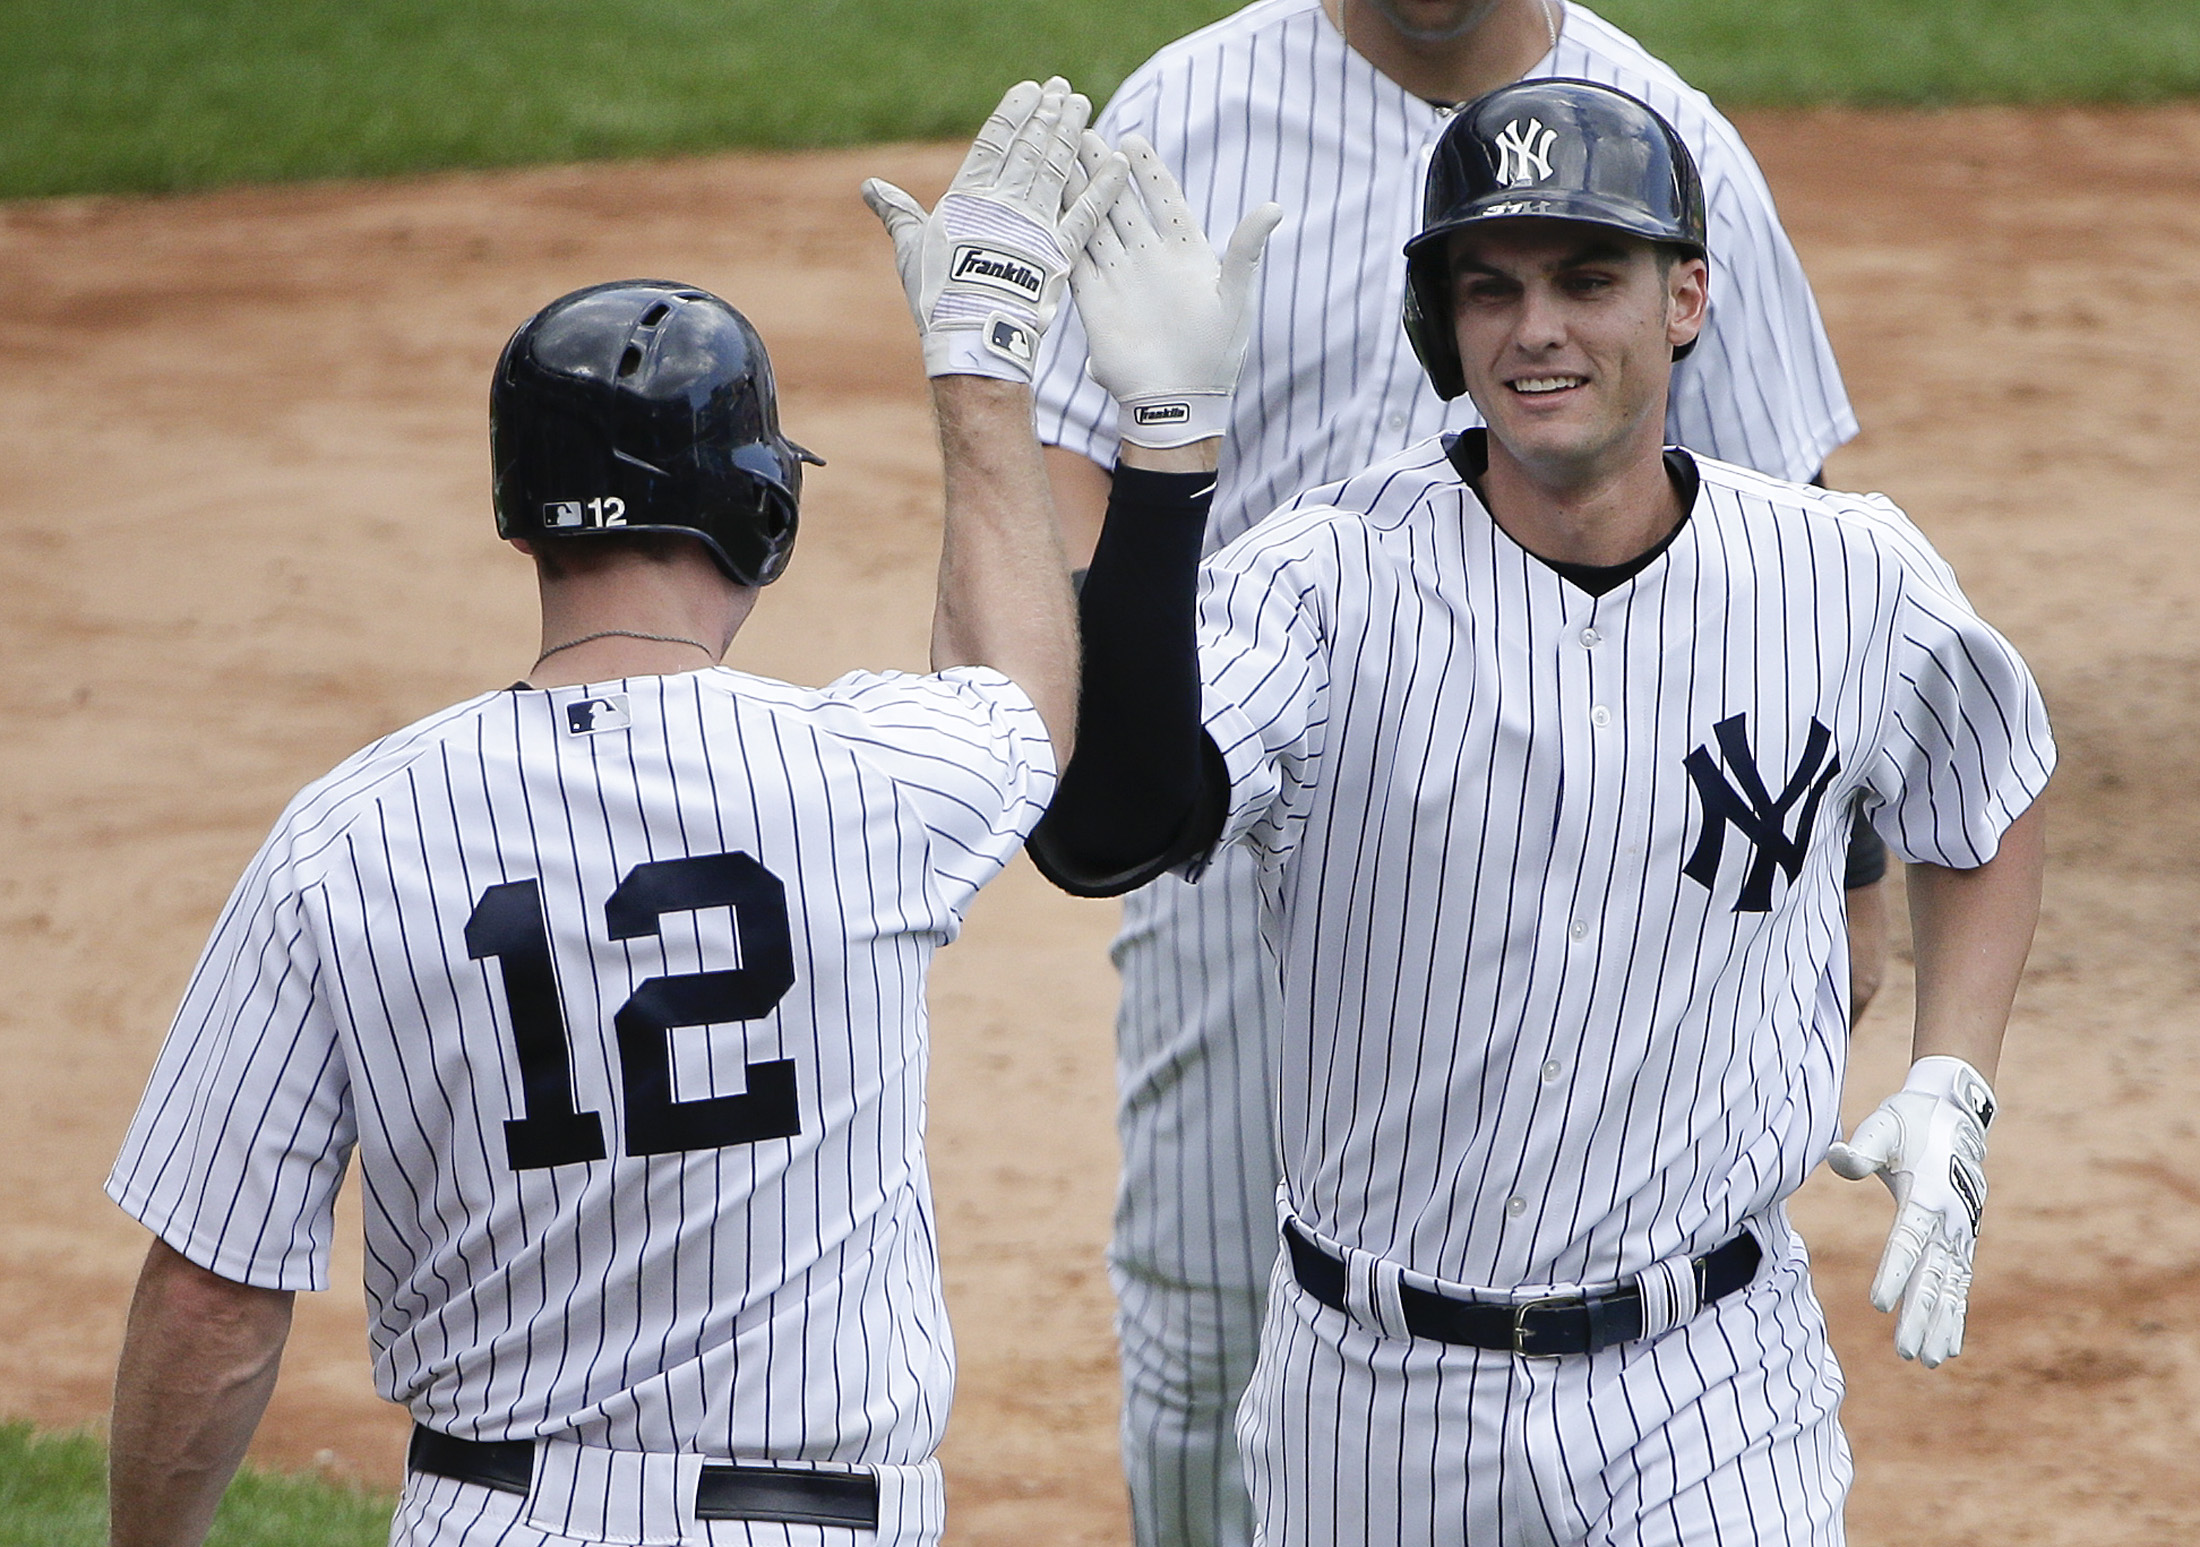 New York Yankees' Greg Bird, right, is greeted by Chase Headley (12) after hitting a two-run home run against the Minnesota Twins during the sixth inning of a baseball game, Wednesday, Aug. 19, 2015, in New York. It was his second two-run home run of the